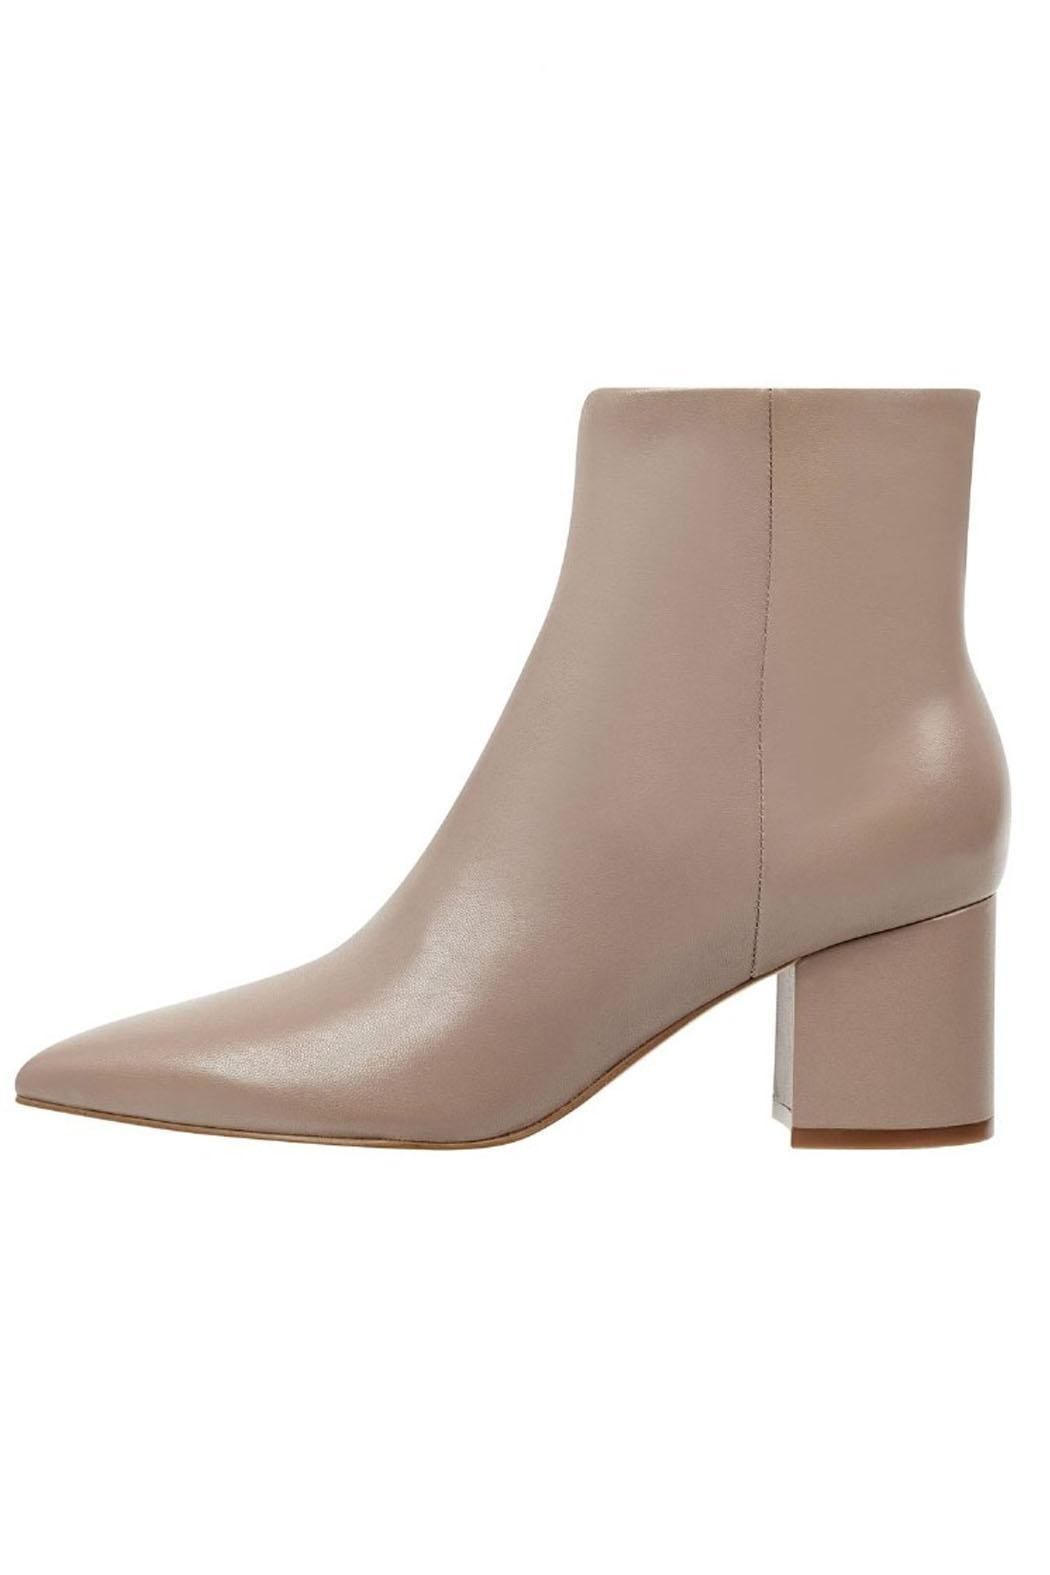 Marc Fisher LTD Trendy Leather Bootie - Main Image